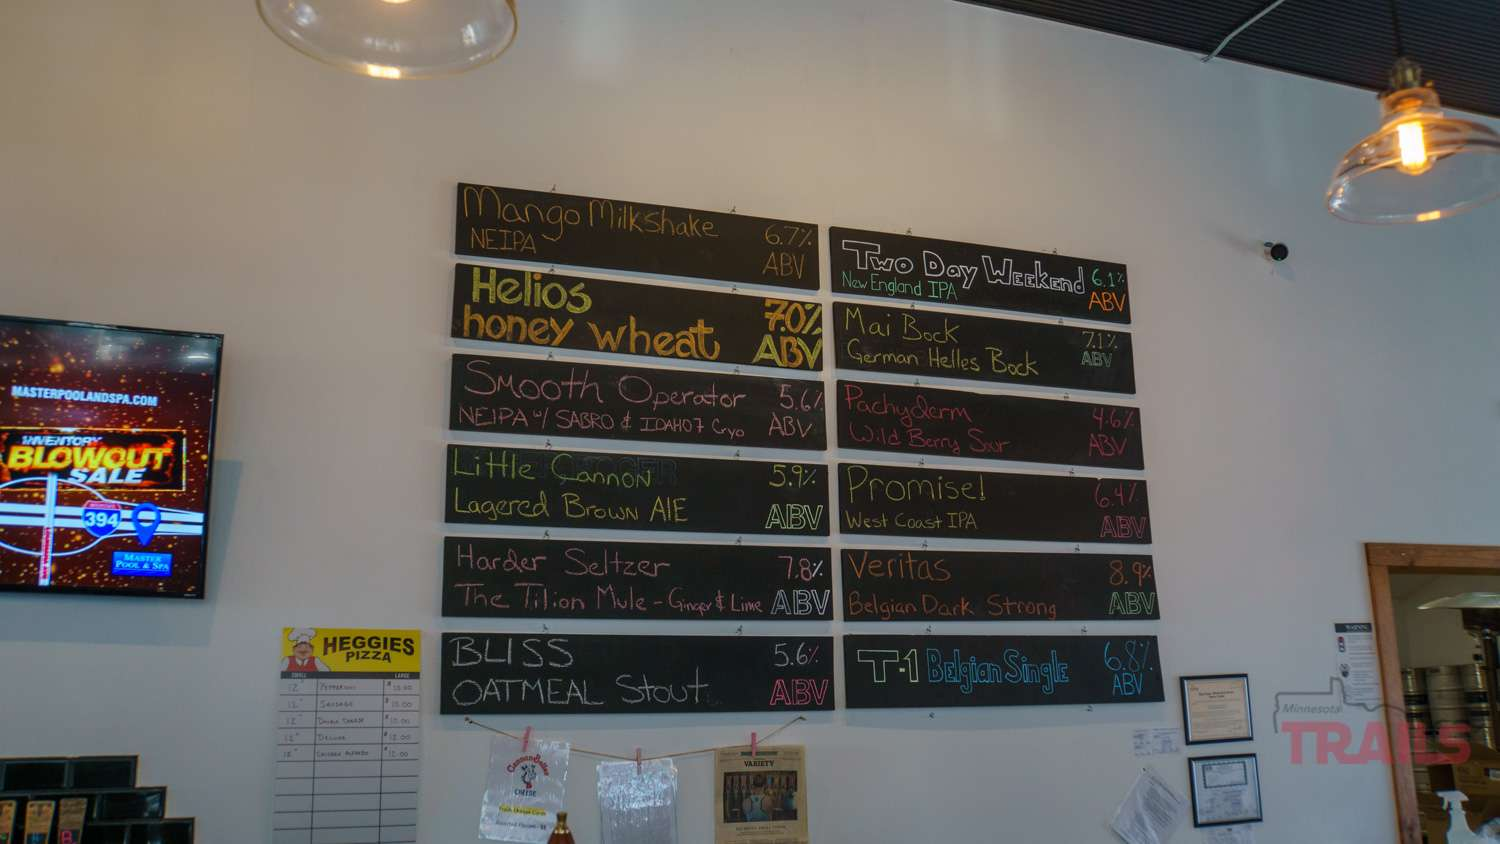 A chalkboard listing beers in a taproom